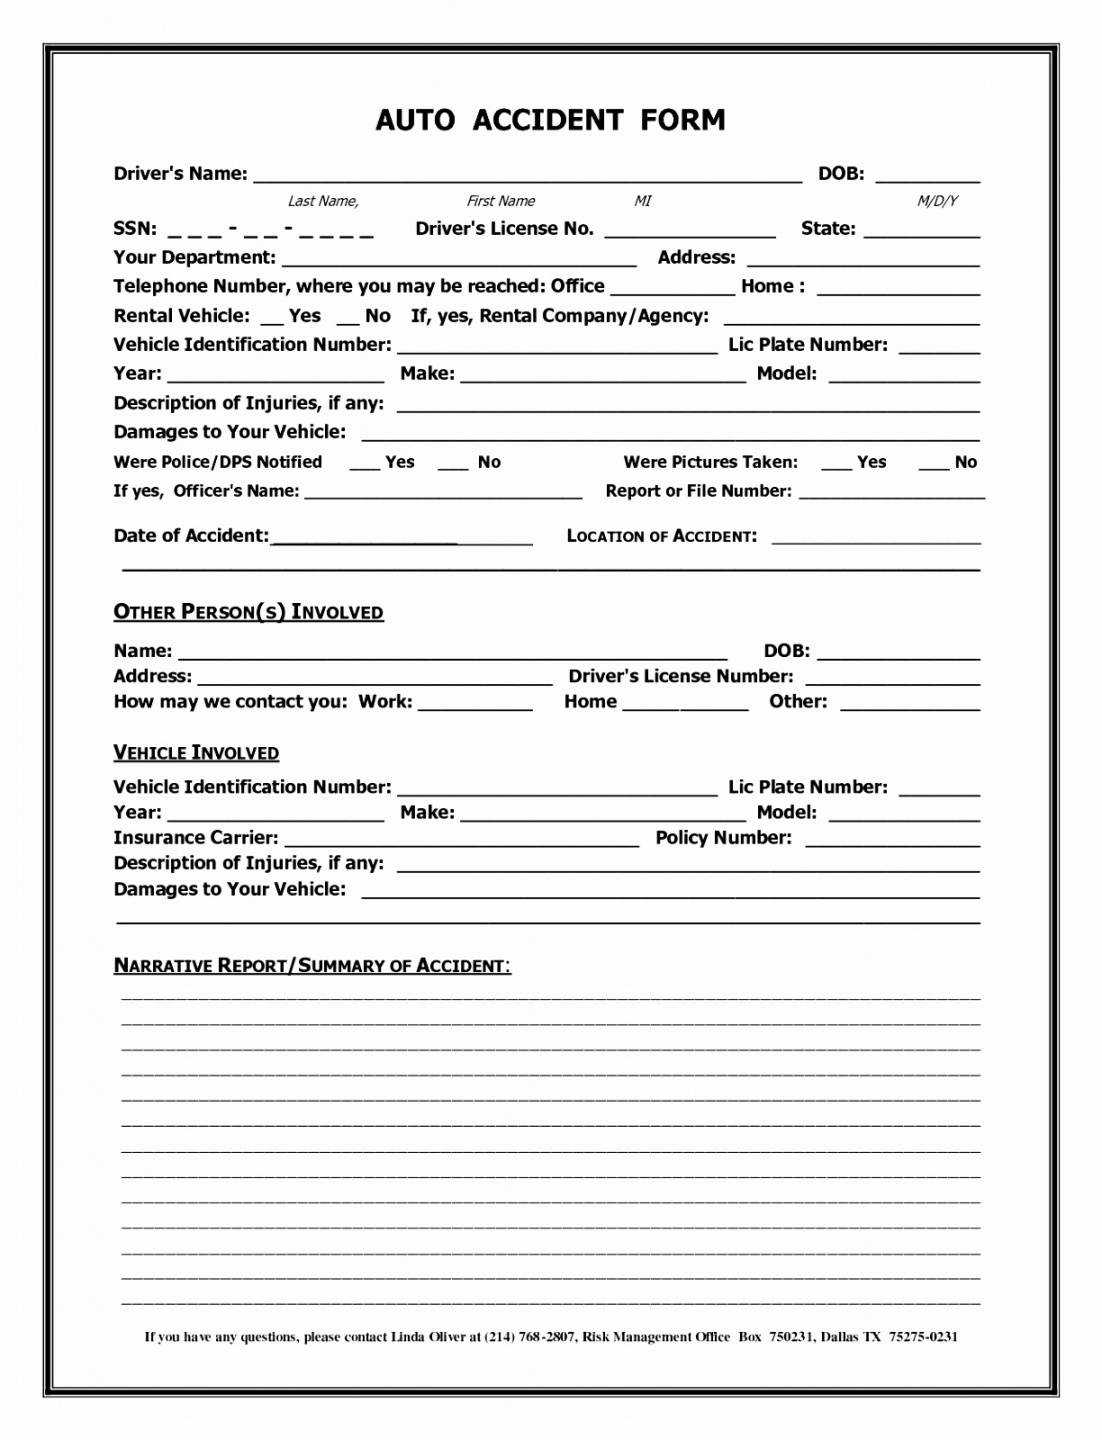 004 Template Ideas Accident Reporting Form Report Uk Of Throughout Vehicle Accident Report Form Template